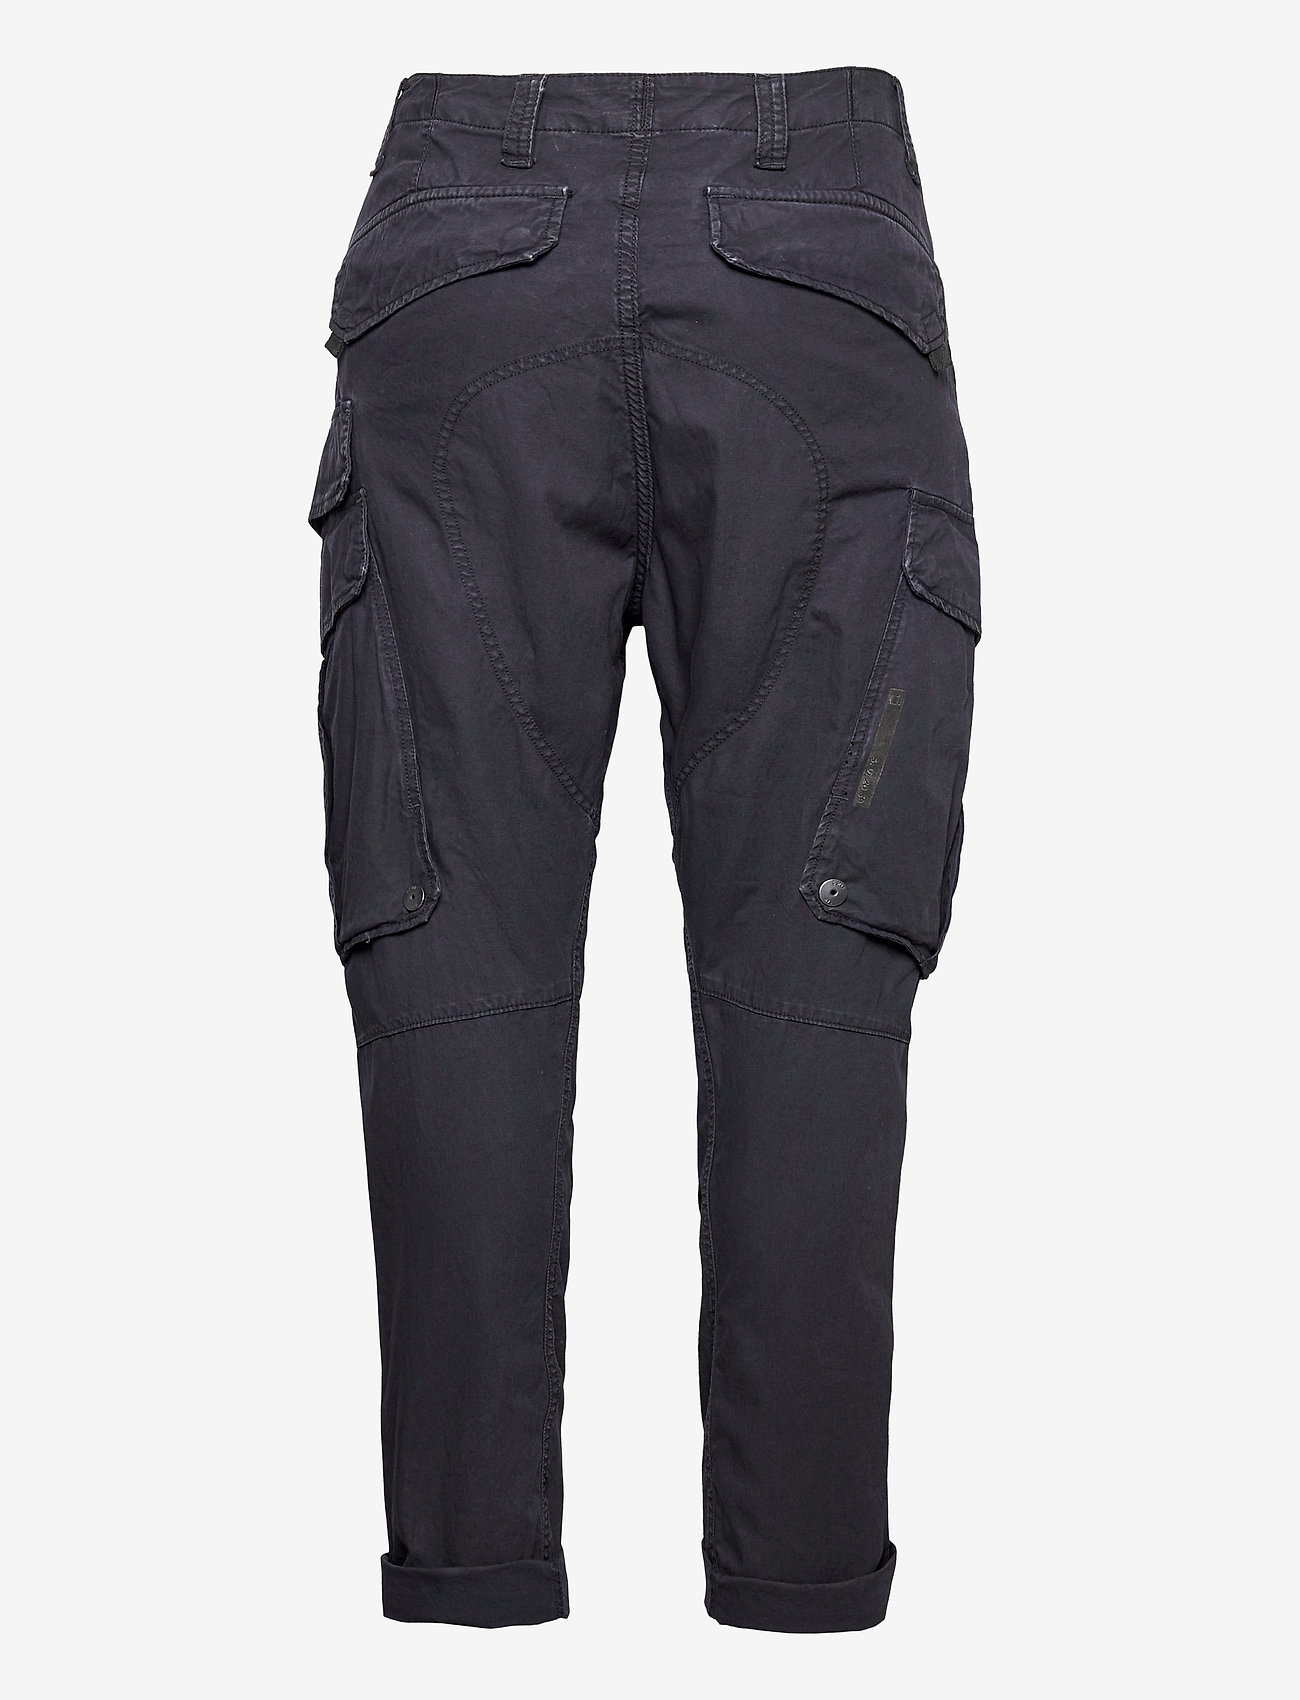 G-star RAW - Droner relaxed tapered cargo pant - cargobukser - sartho blue wave dyed - 1